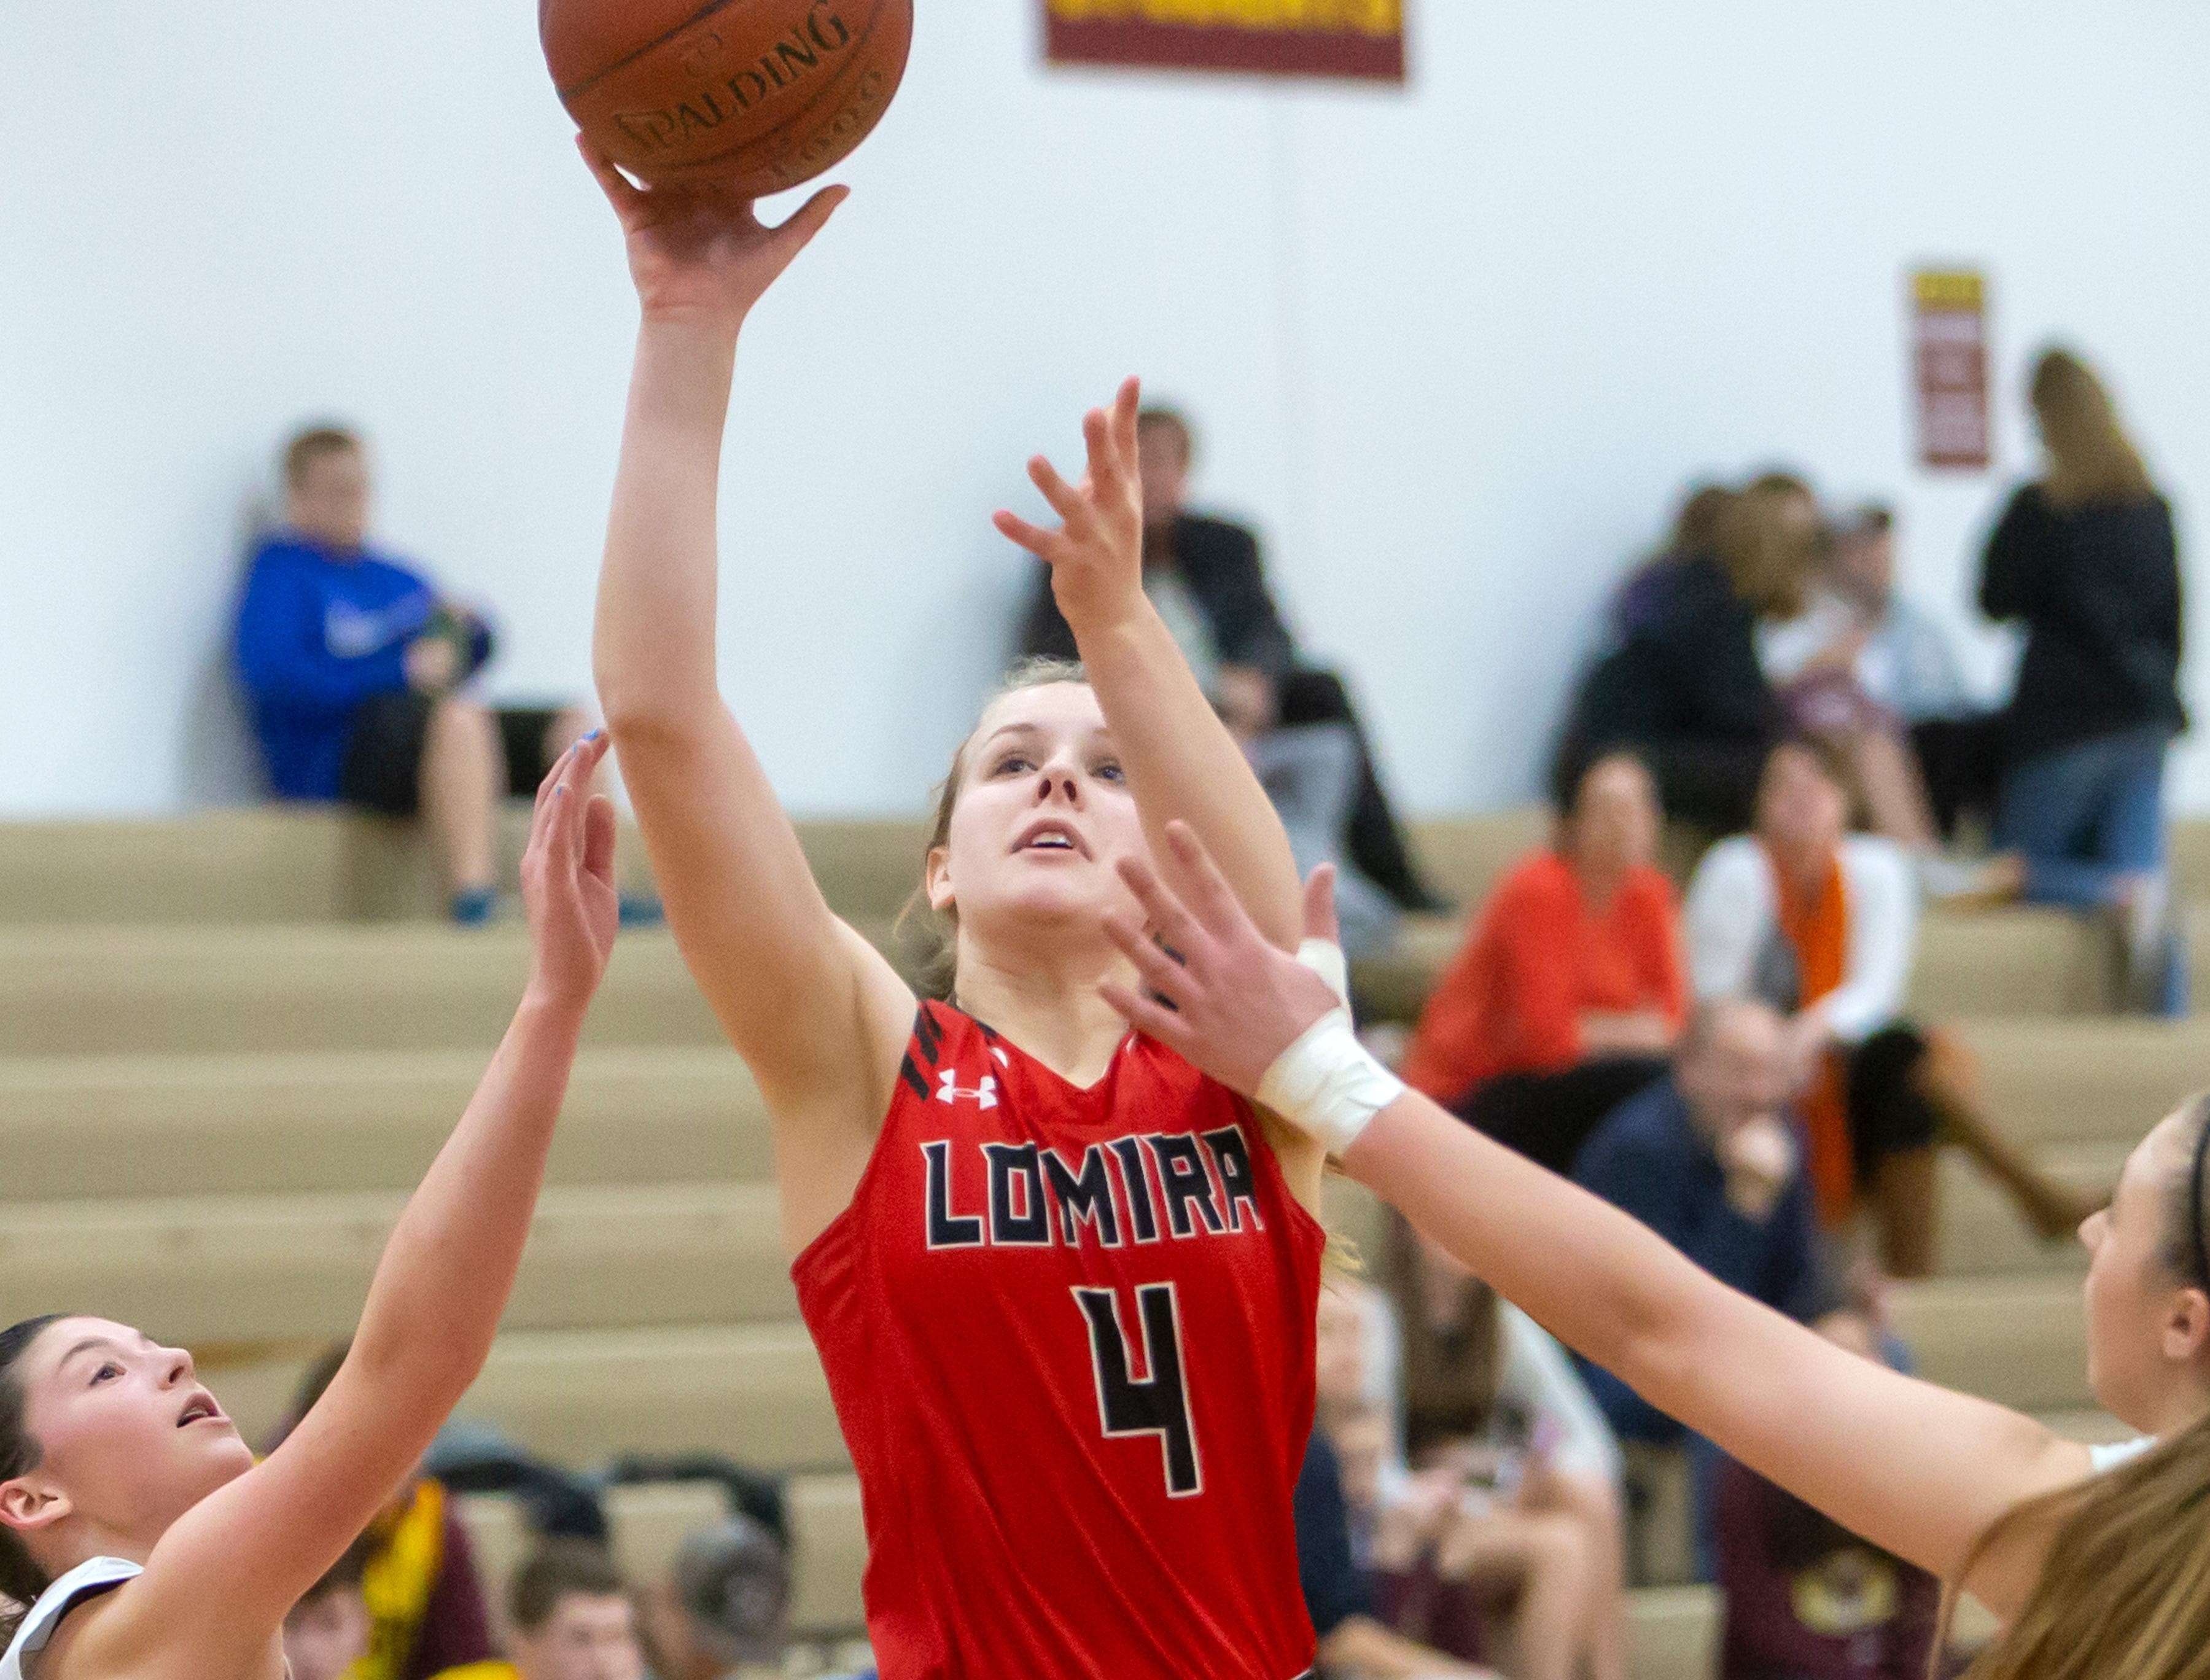 Lomira's Lizzy Wulff puts up a shot between Omro players at Omro High School on Friday, December 14, 2018.